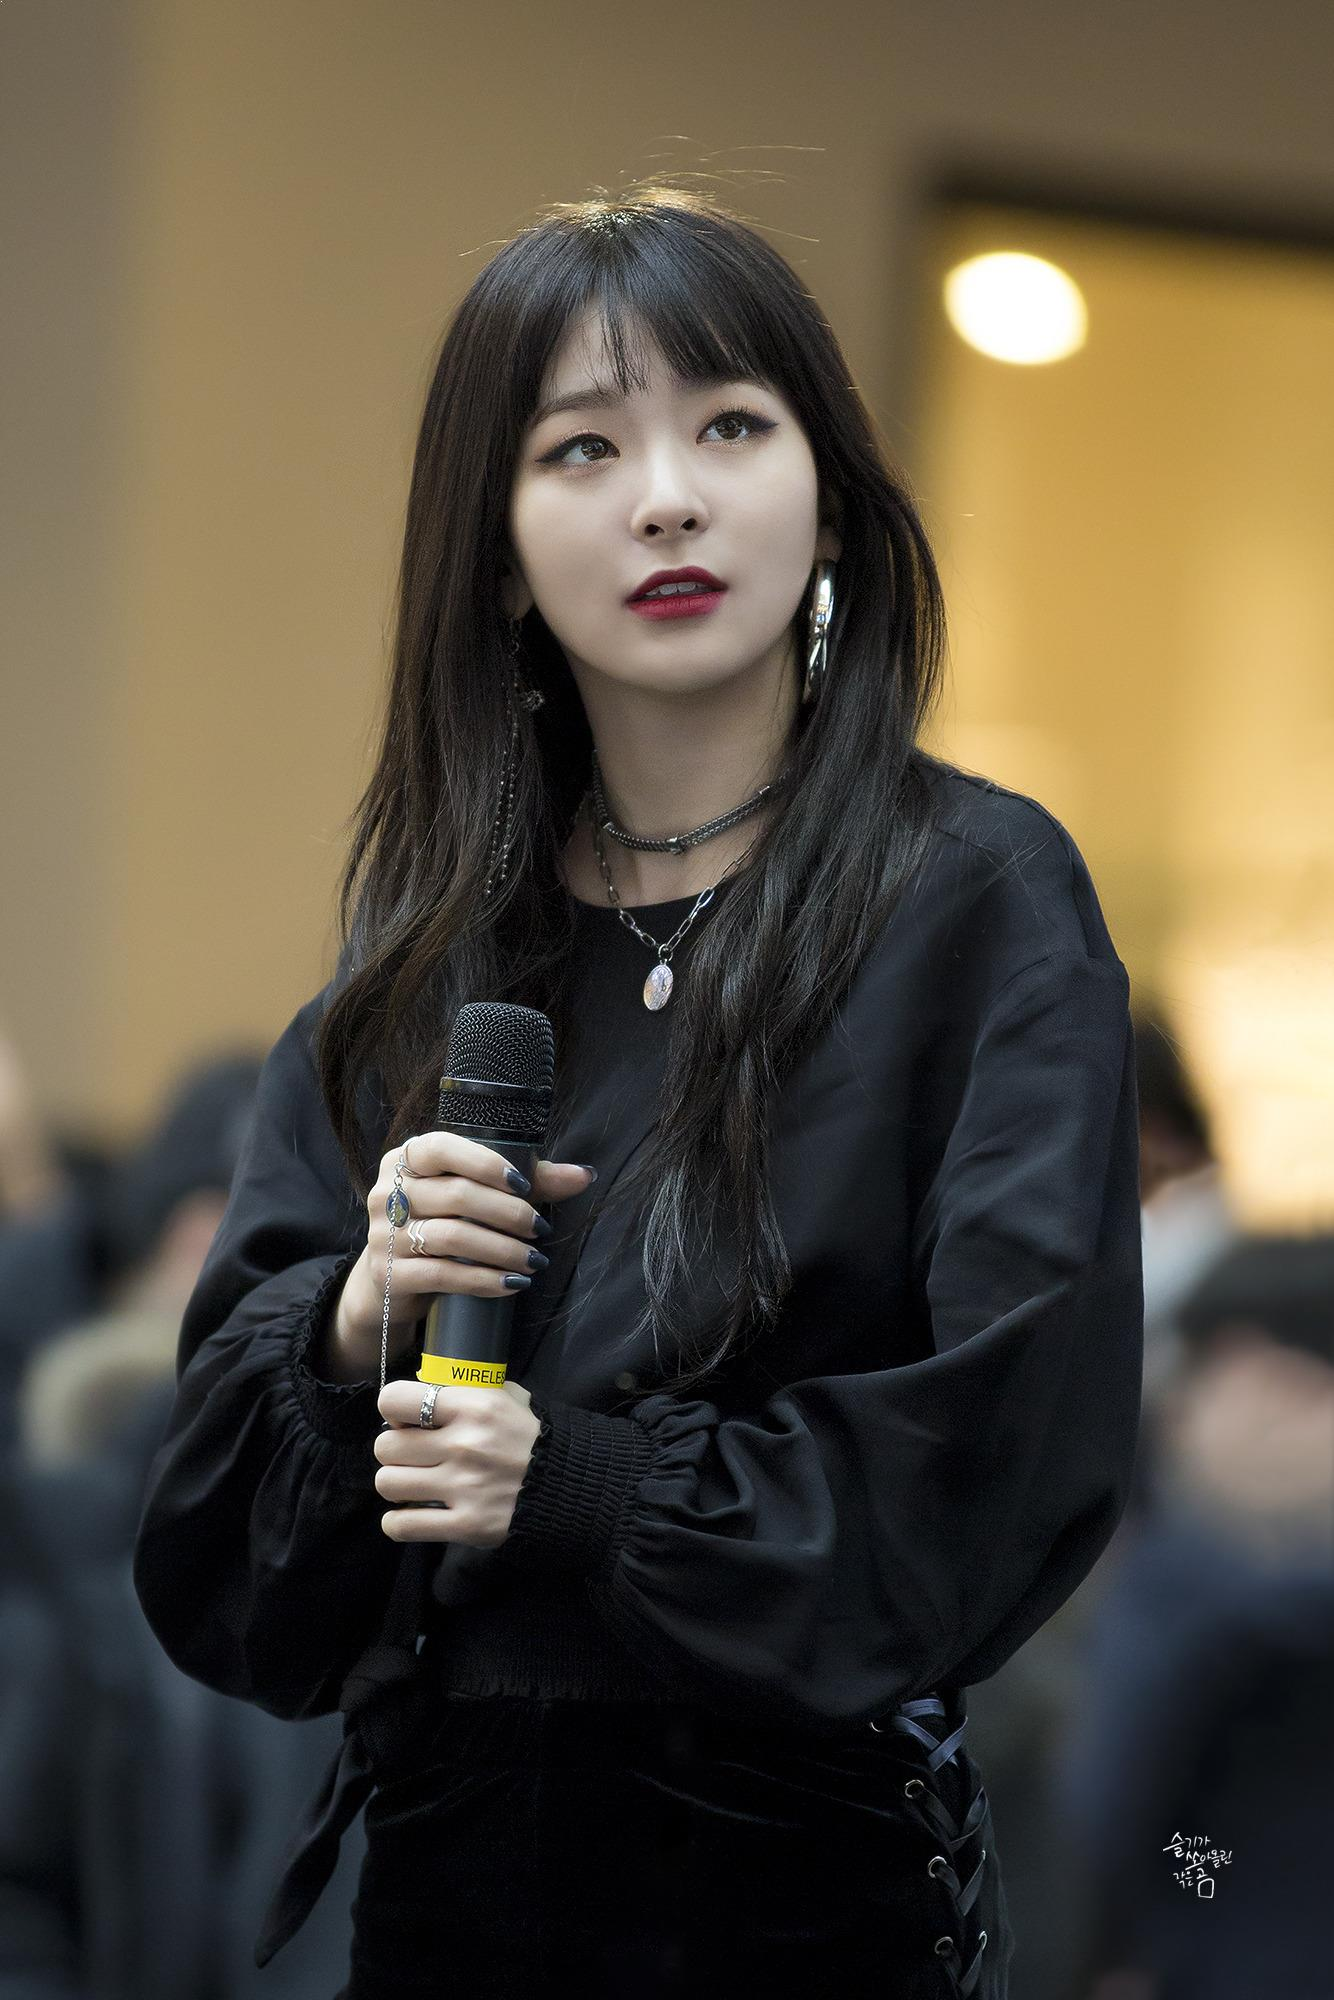 SeulGi, SeulGi Profile, SeulGi All Black, Red Velvet SeulGi